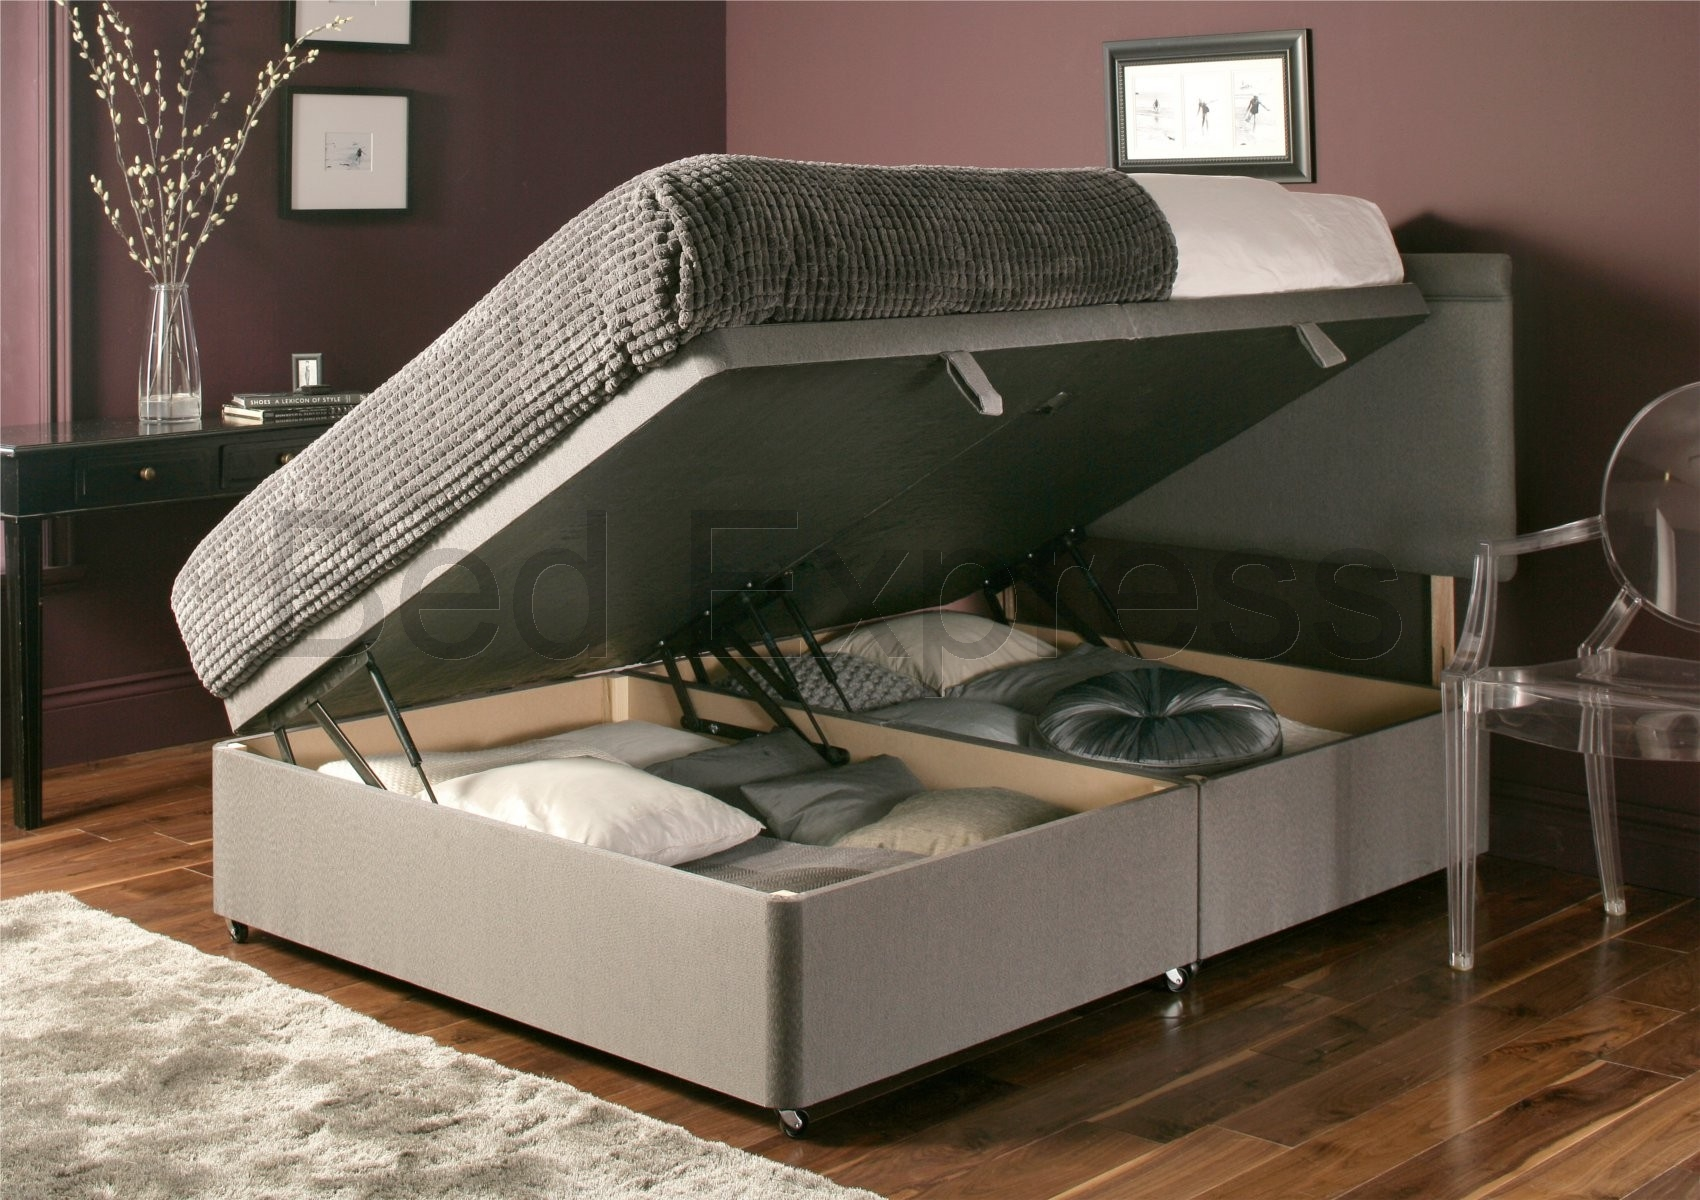 Luxury chenille ottoman divan storage bed single double king size ebay Bed divan